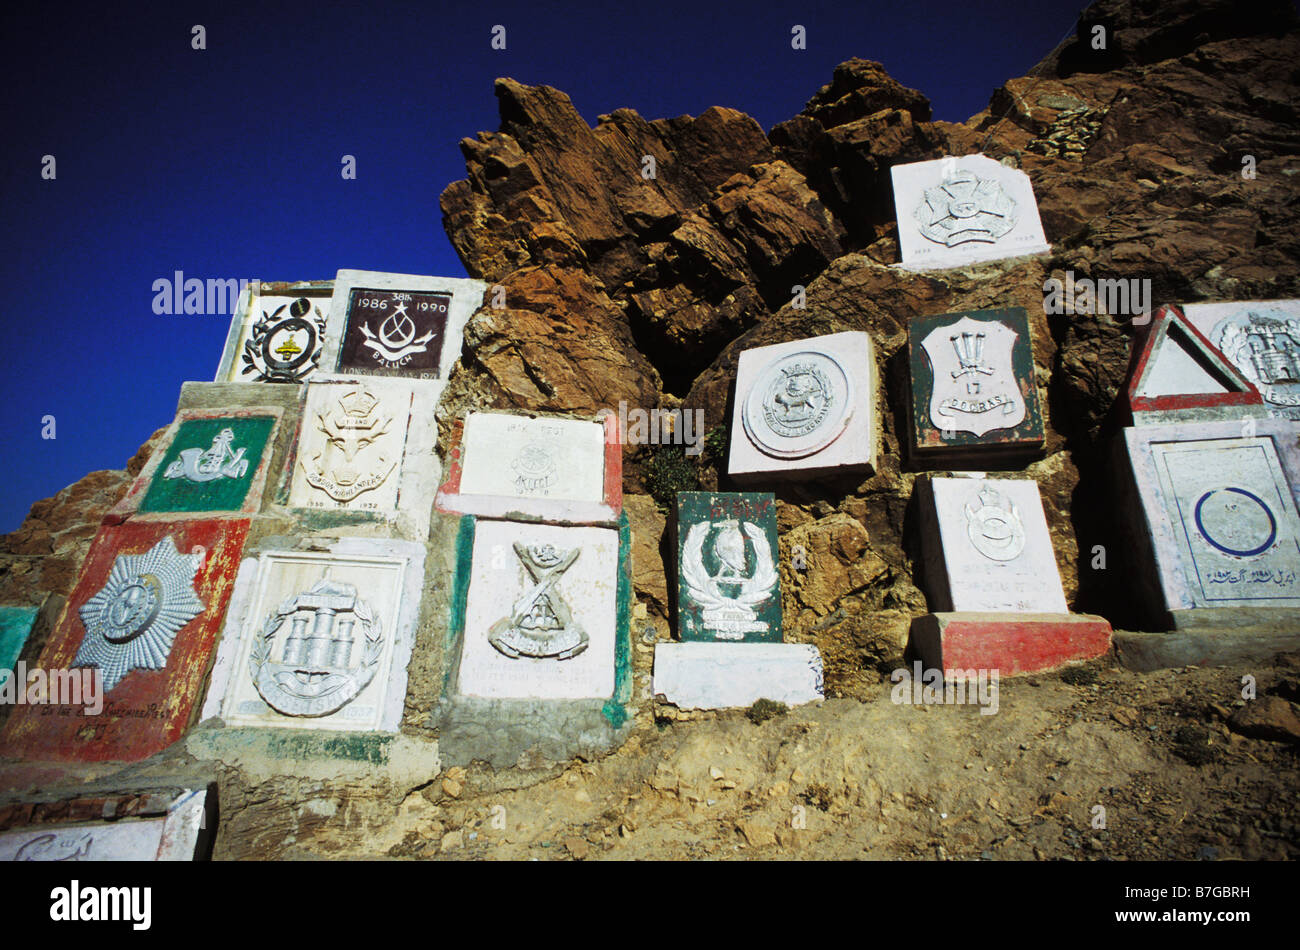 Regimental Insignia on roadside cliff at Khyber Pass in Pakistan - Stock Image